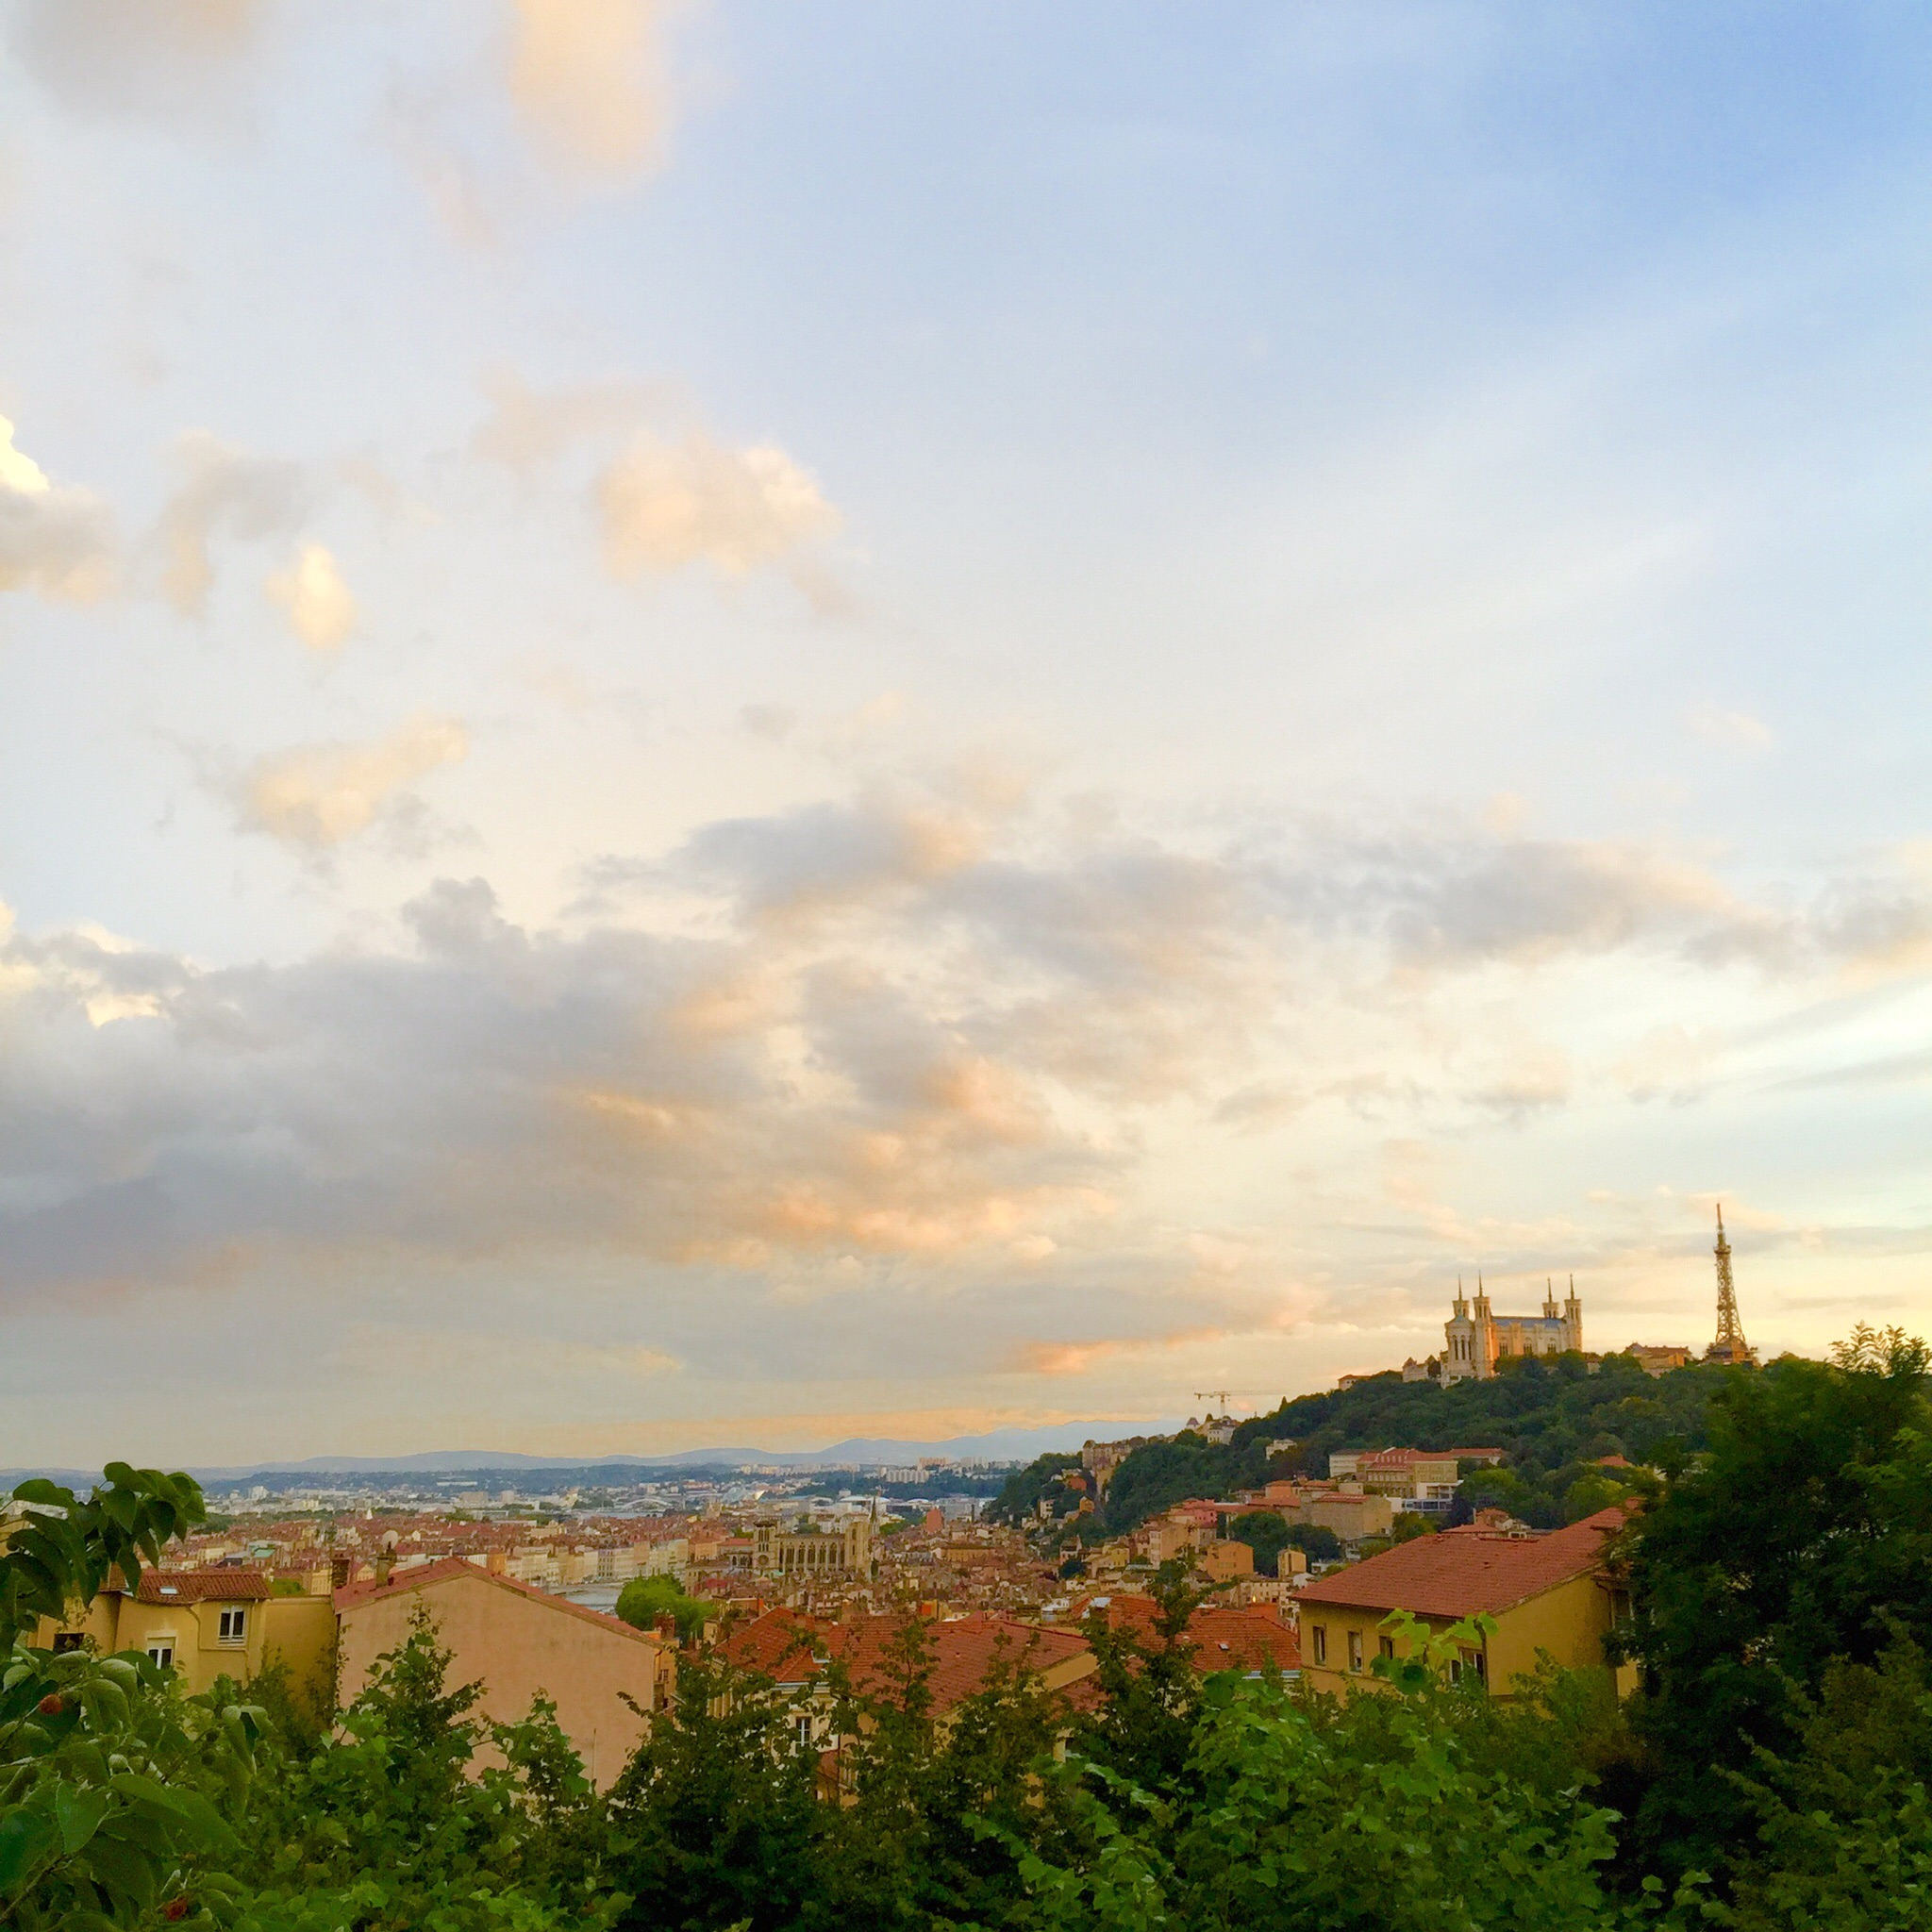 View of Lyon and Fourvière hill from Croix Rousse